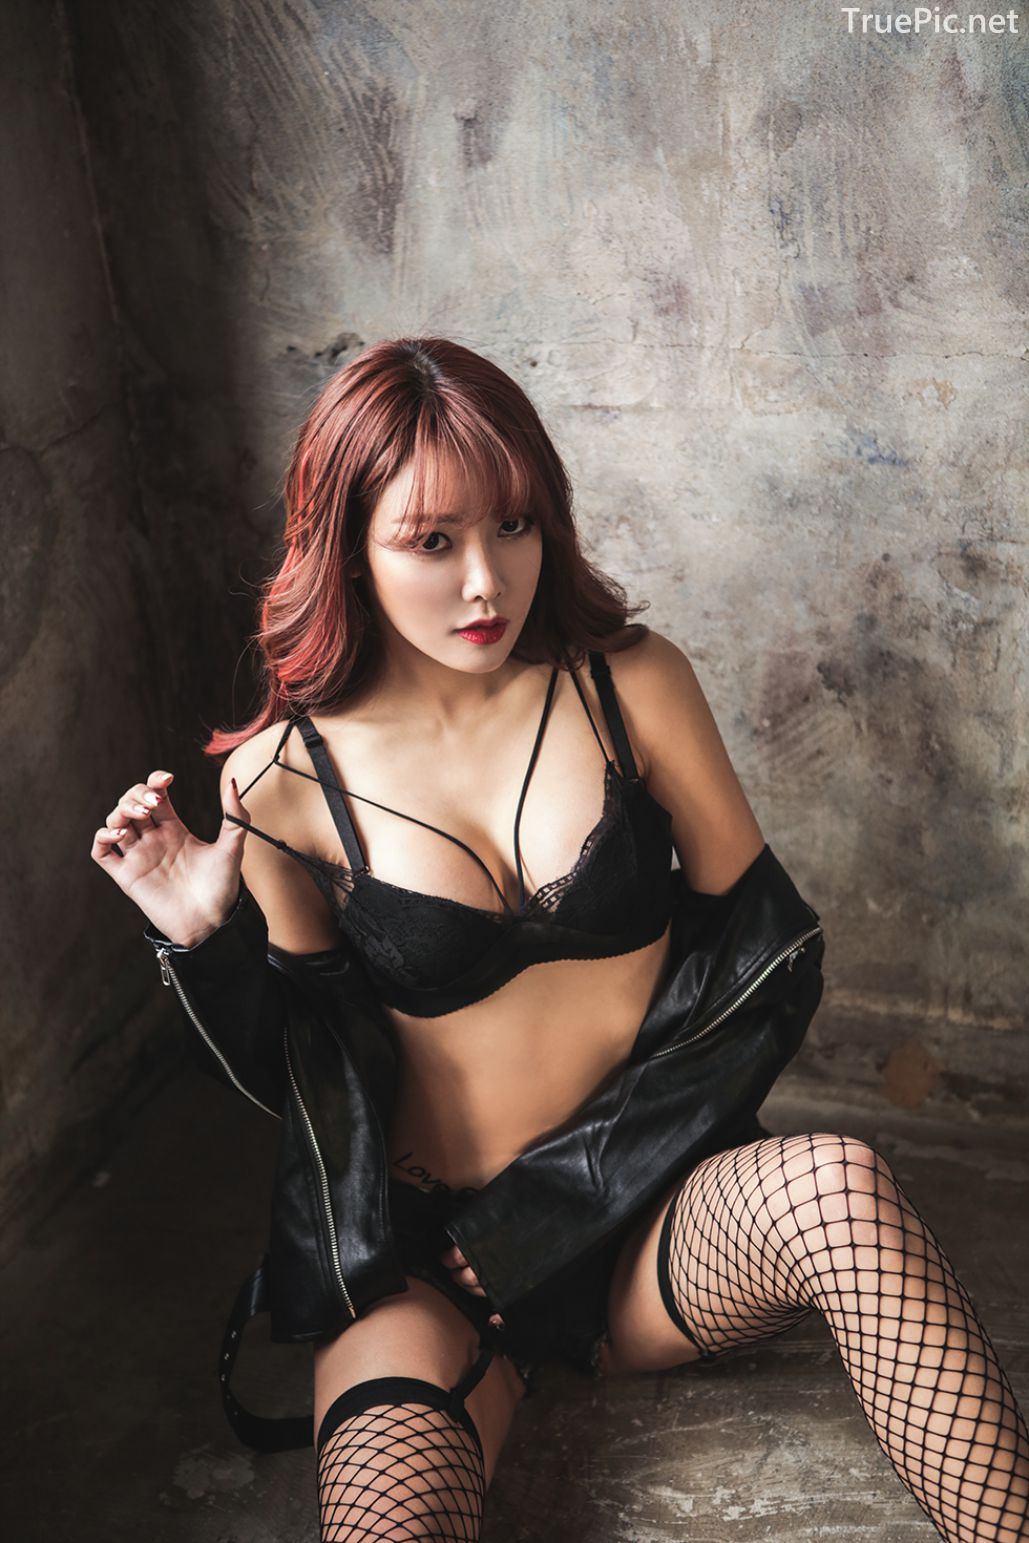 Korean-Lingerie-Fashion-Lee-Da-Hee-model-Tell-Me-What-You-Want-To-Do-TruePic.net- Picture 5